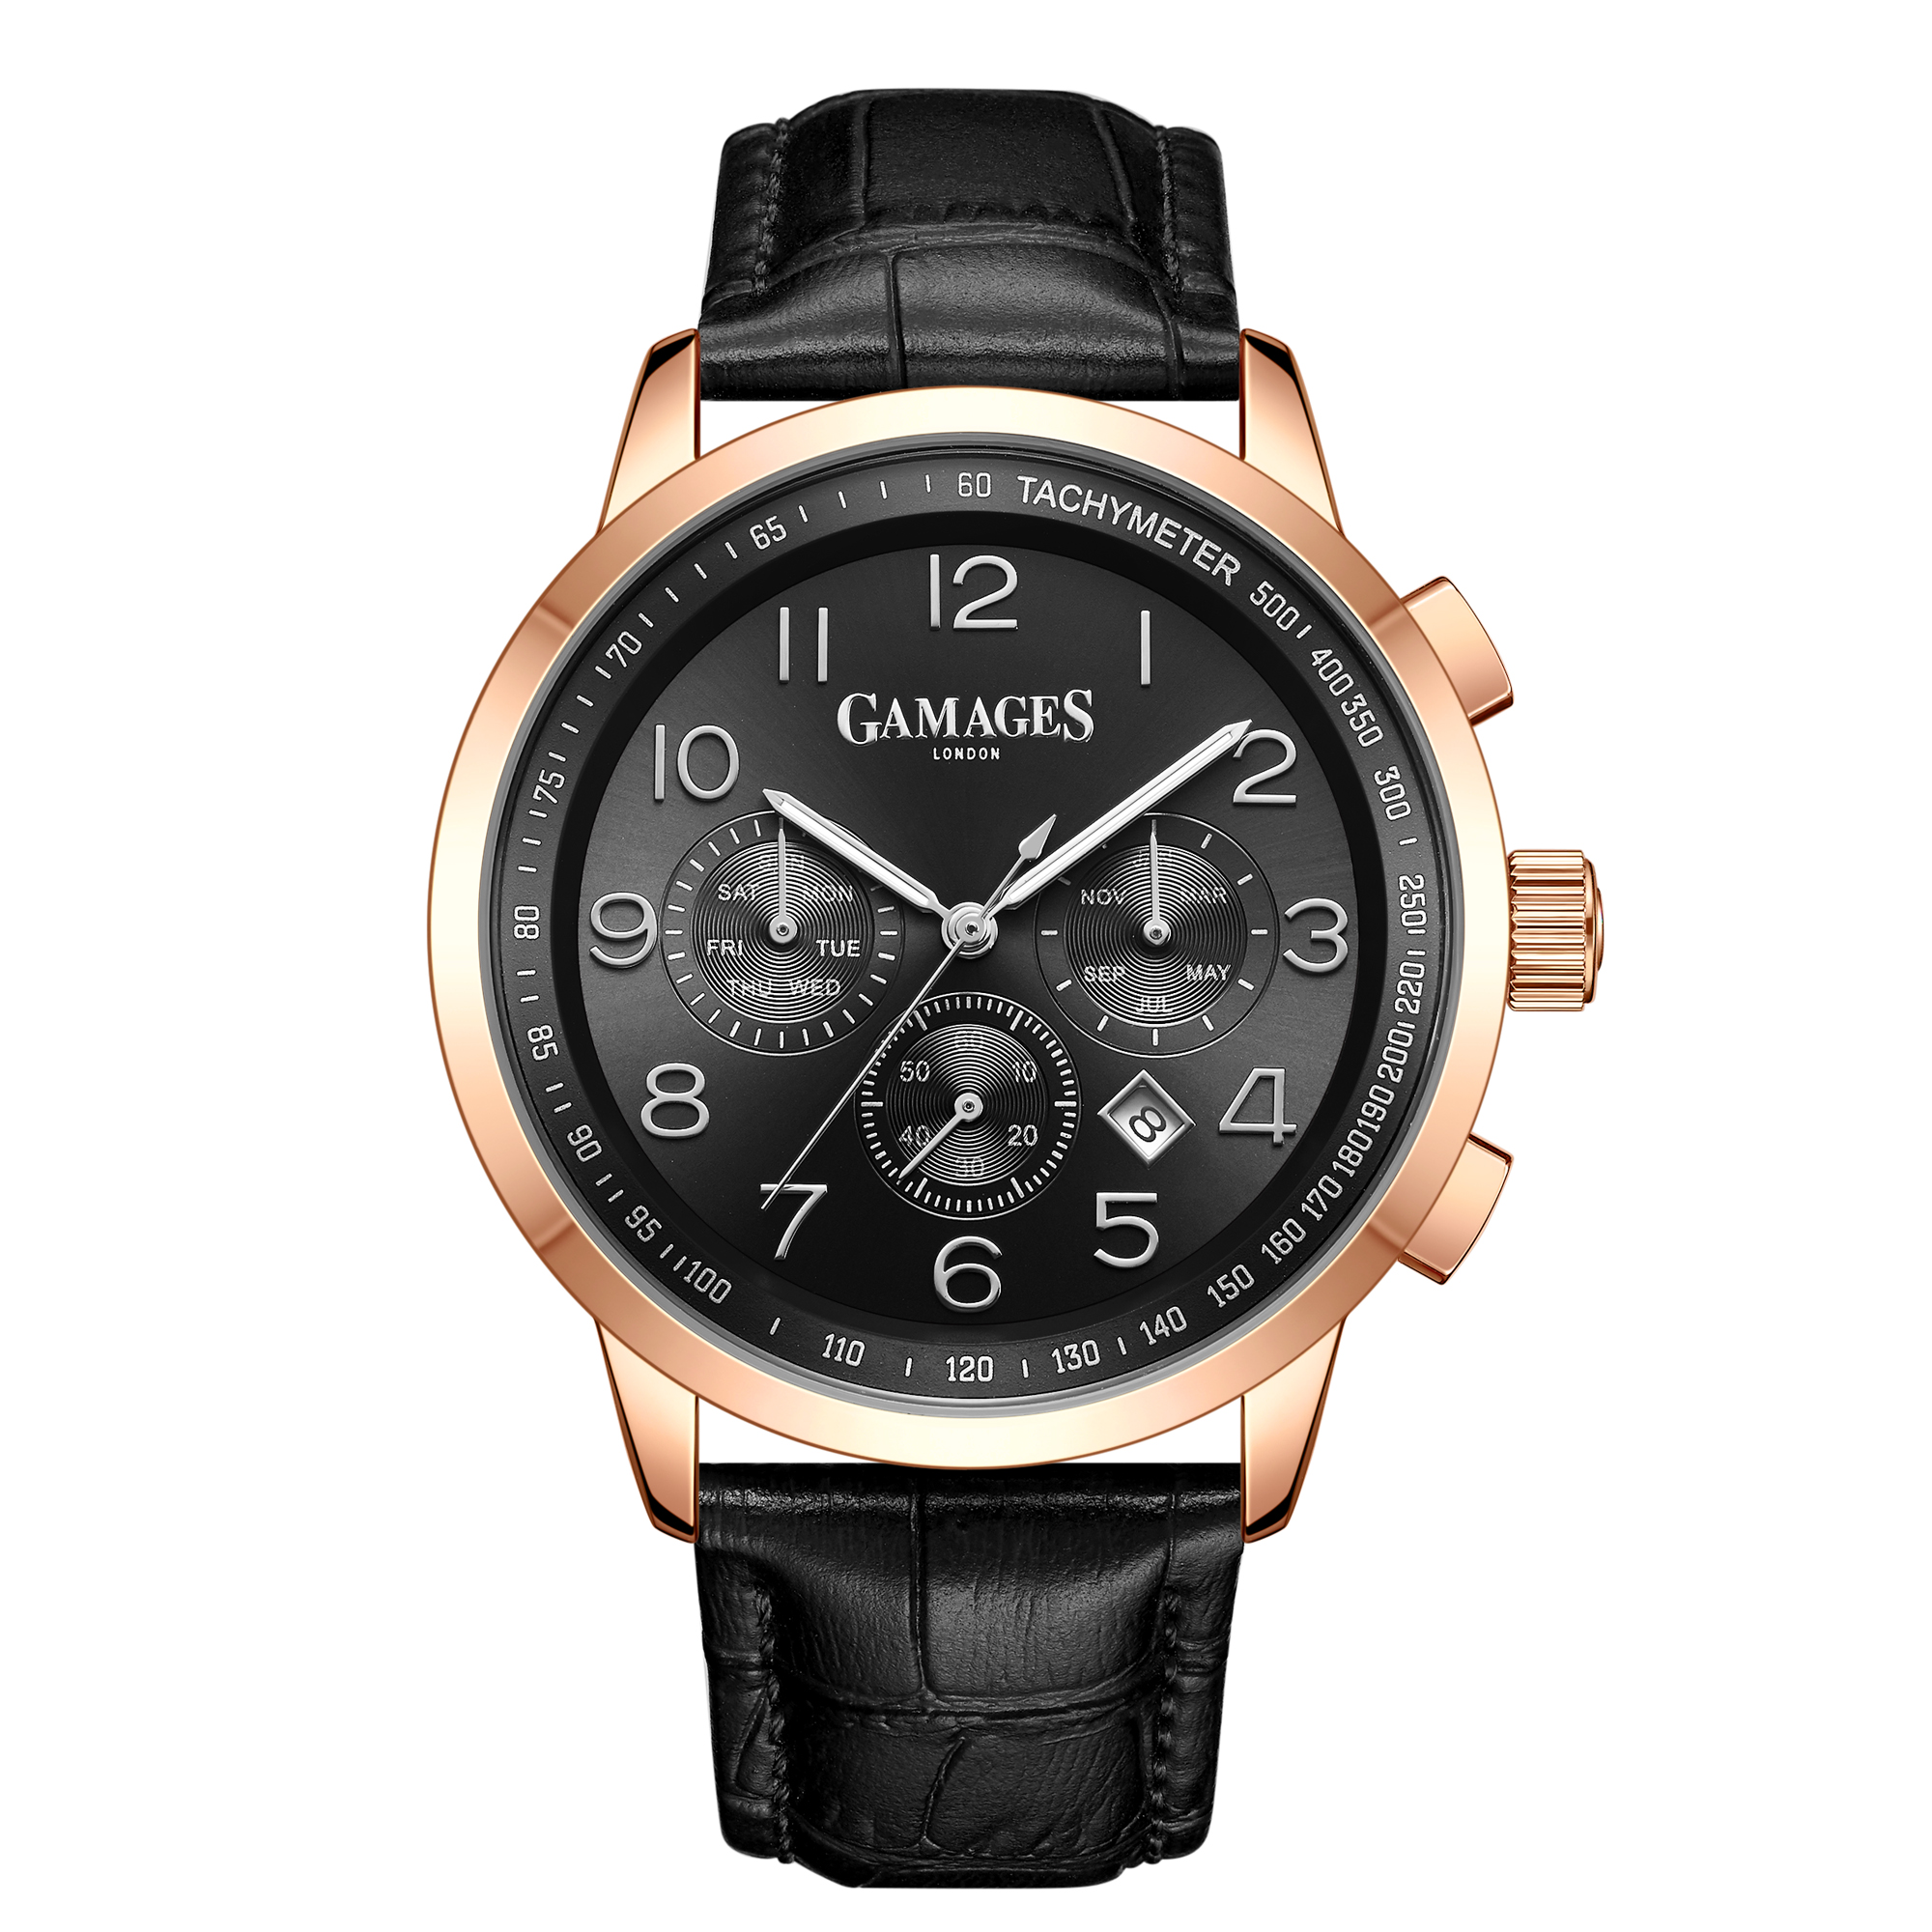 Ltd Edition Hand Assembled Gamages Classique Automatic Black – 5 Year Warranty & Free Delivery